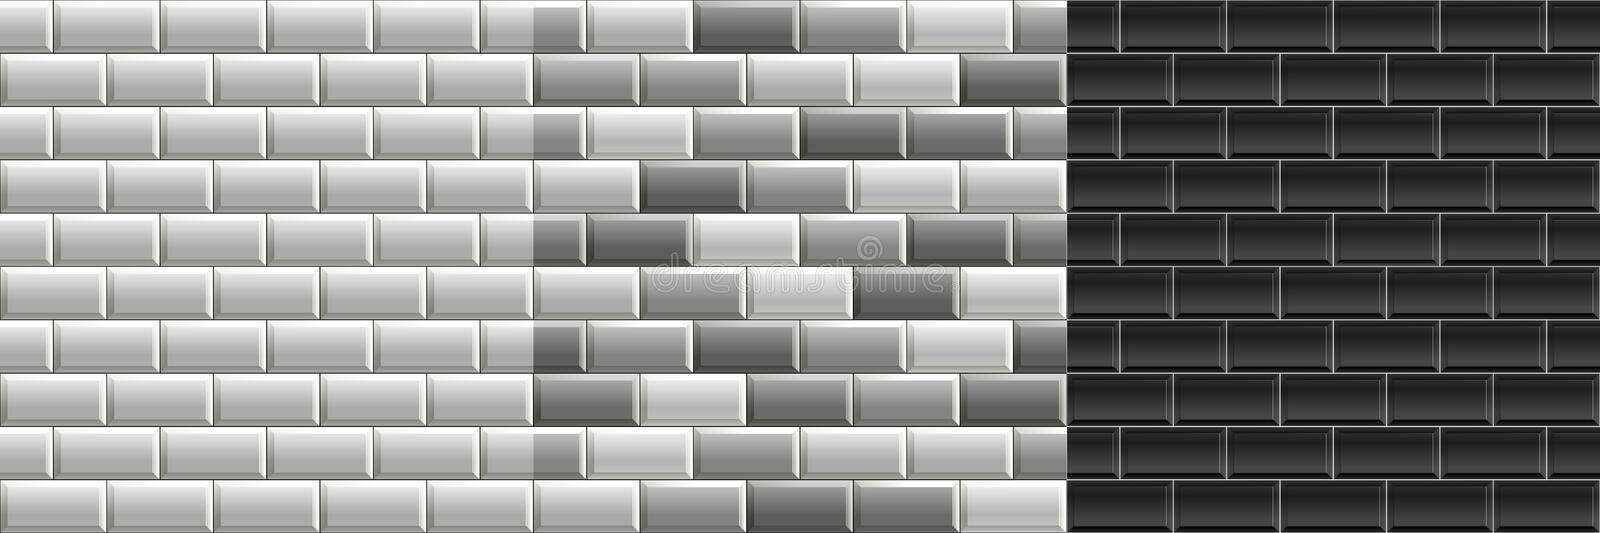 Black and white seamless textures of subway tiles. Set of vector grayscale bricks wall royalty free illustration